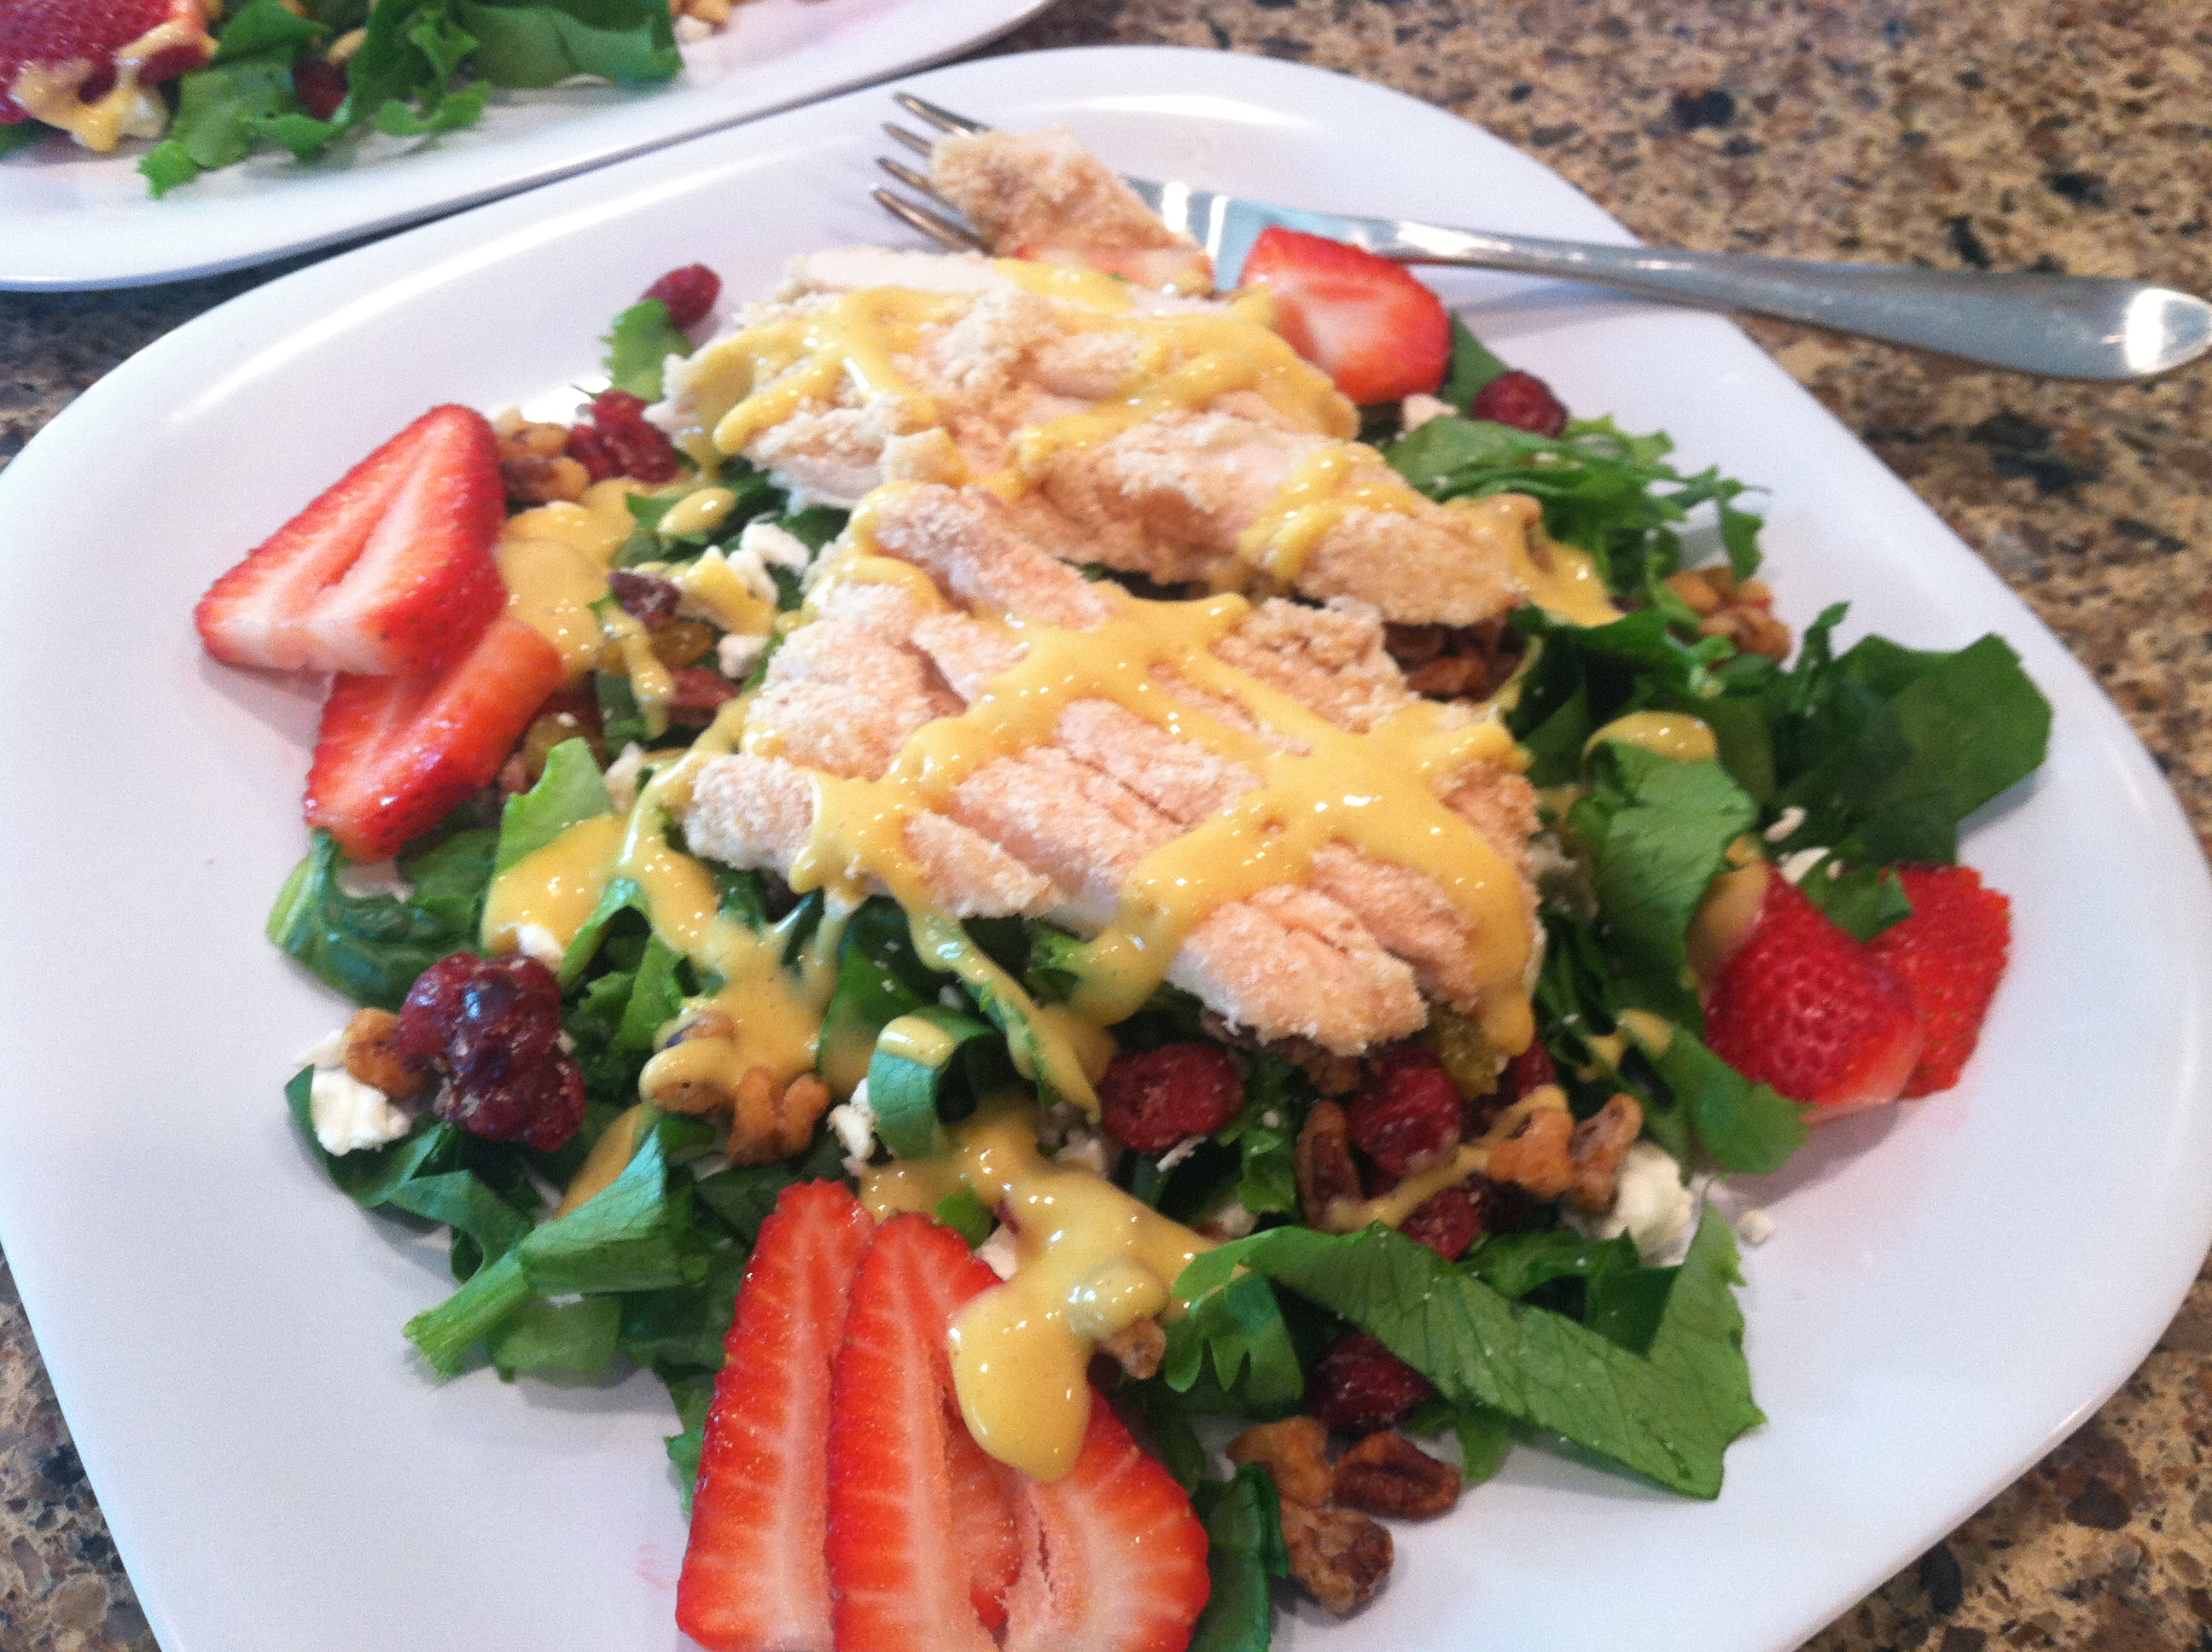 Spinach Salad with Chicken, Strawberries and Honey Mustard ...